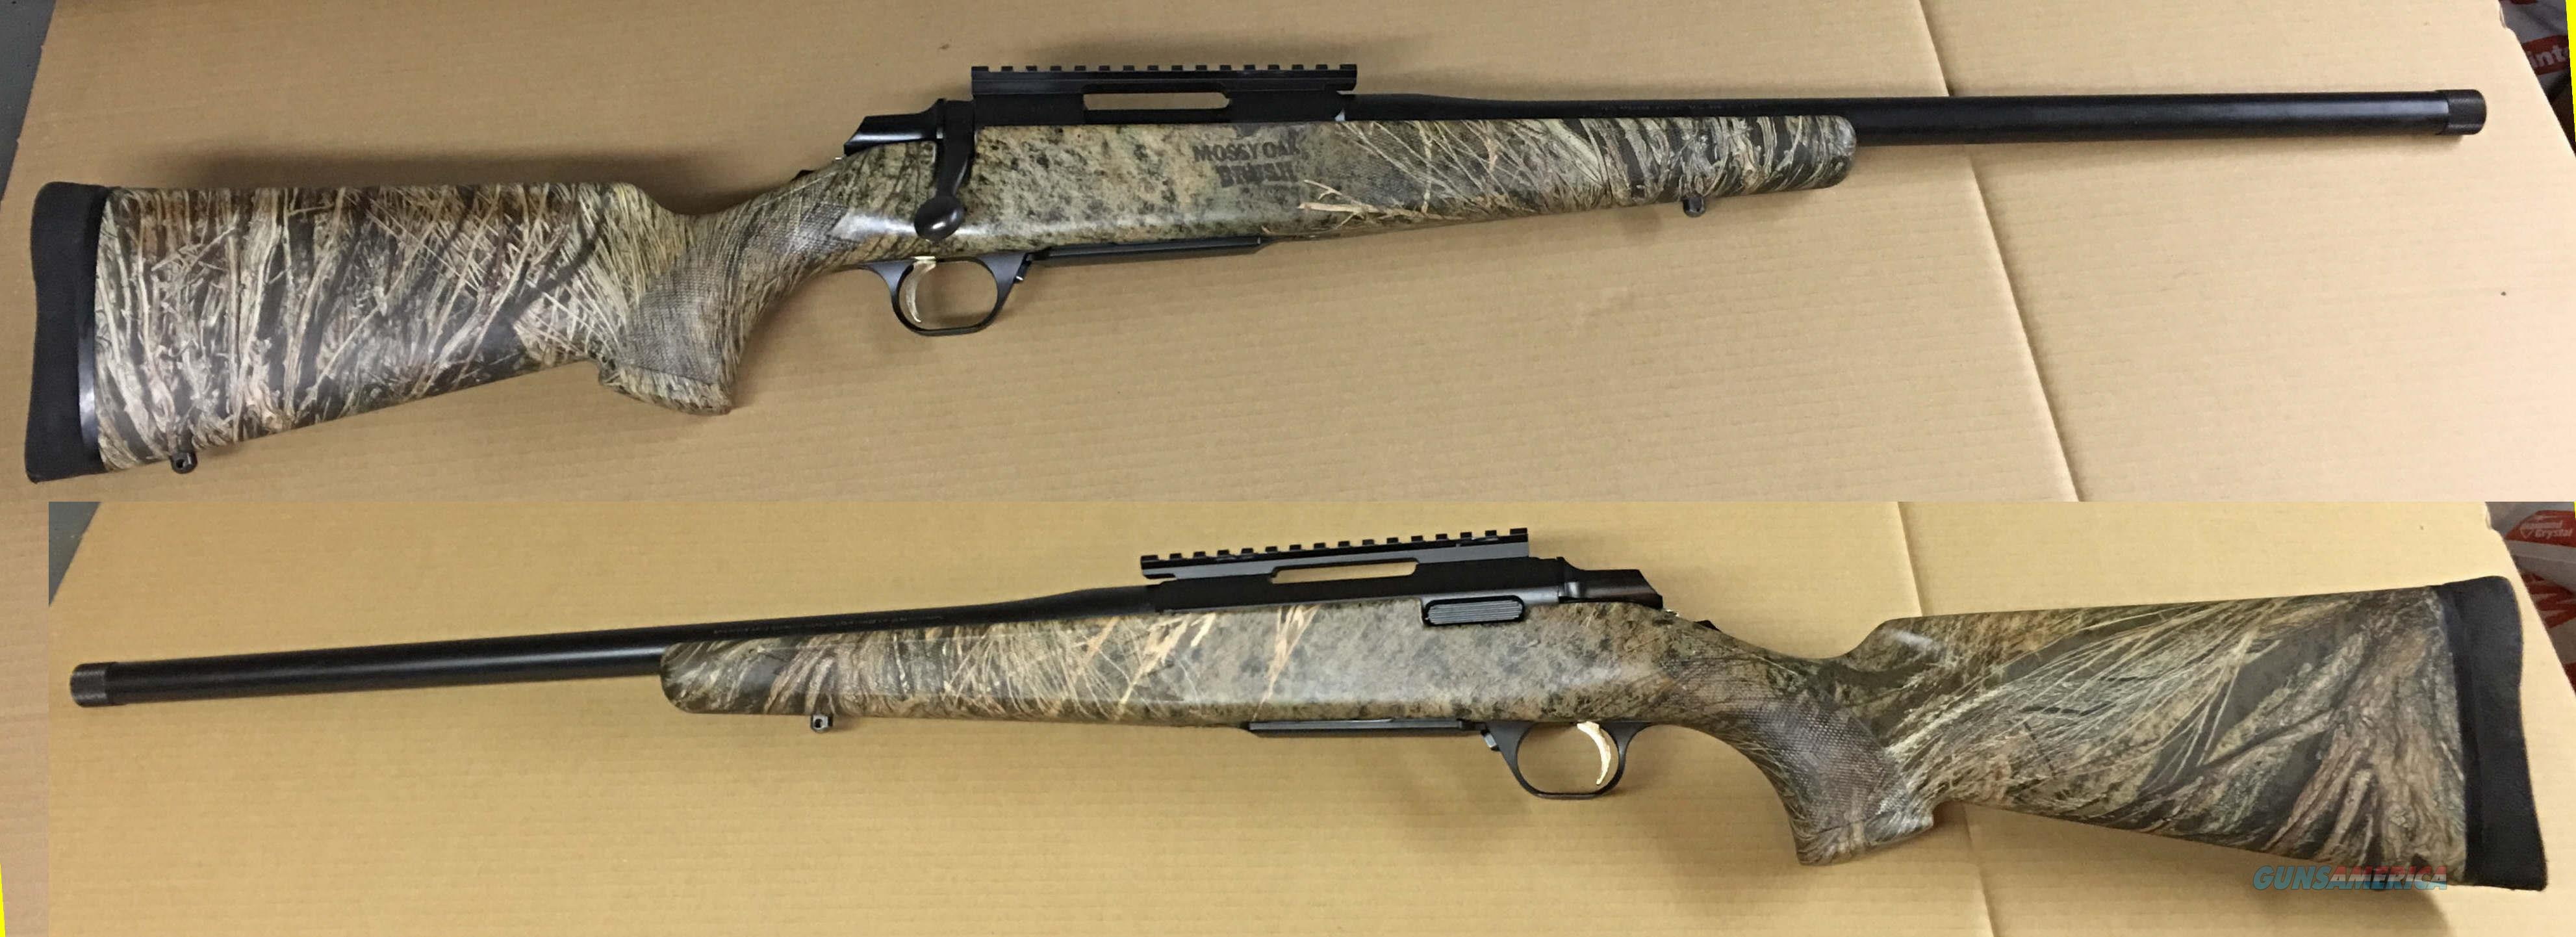 Browning A-Bolt 20 inch threaded barrel Suppressor ready.  Guns > Rifles > Browning Rifles > Bolt Action > Hunting > Blue